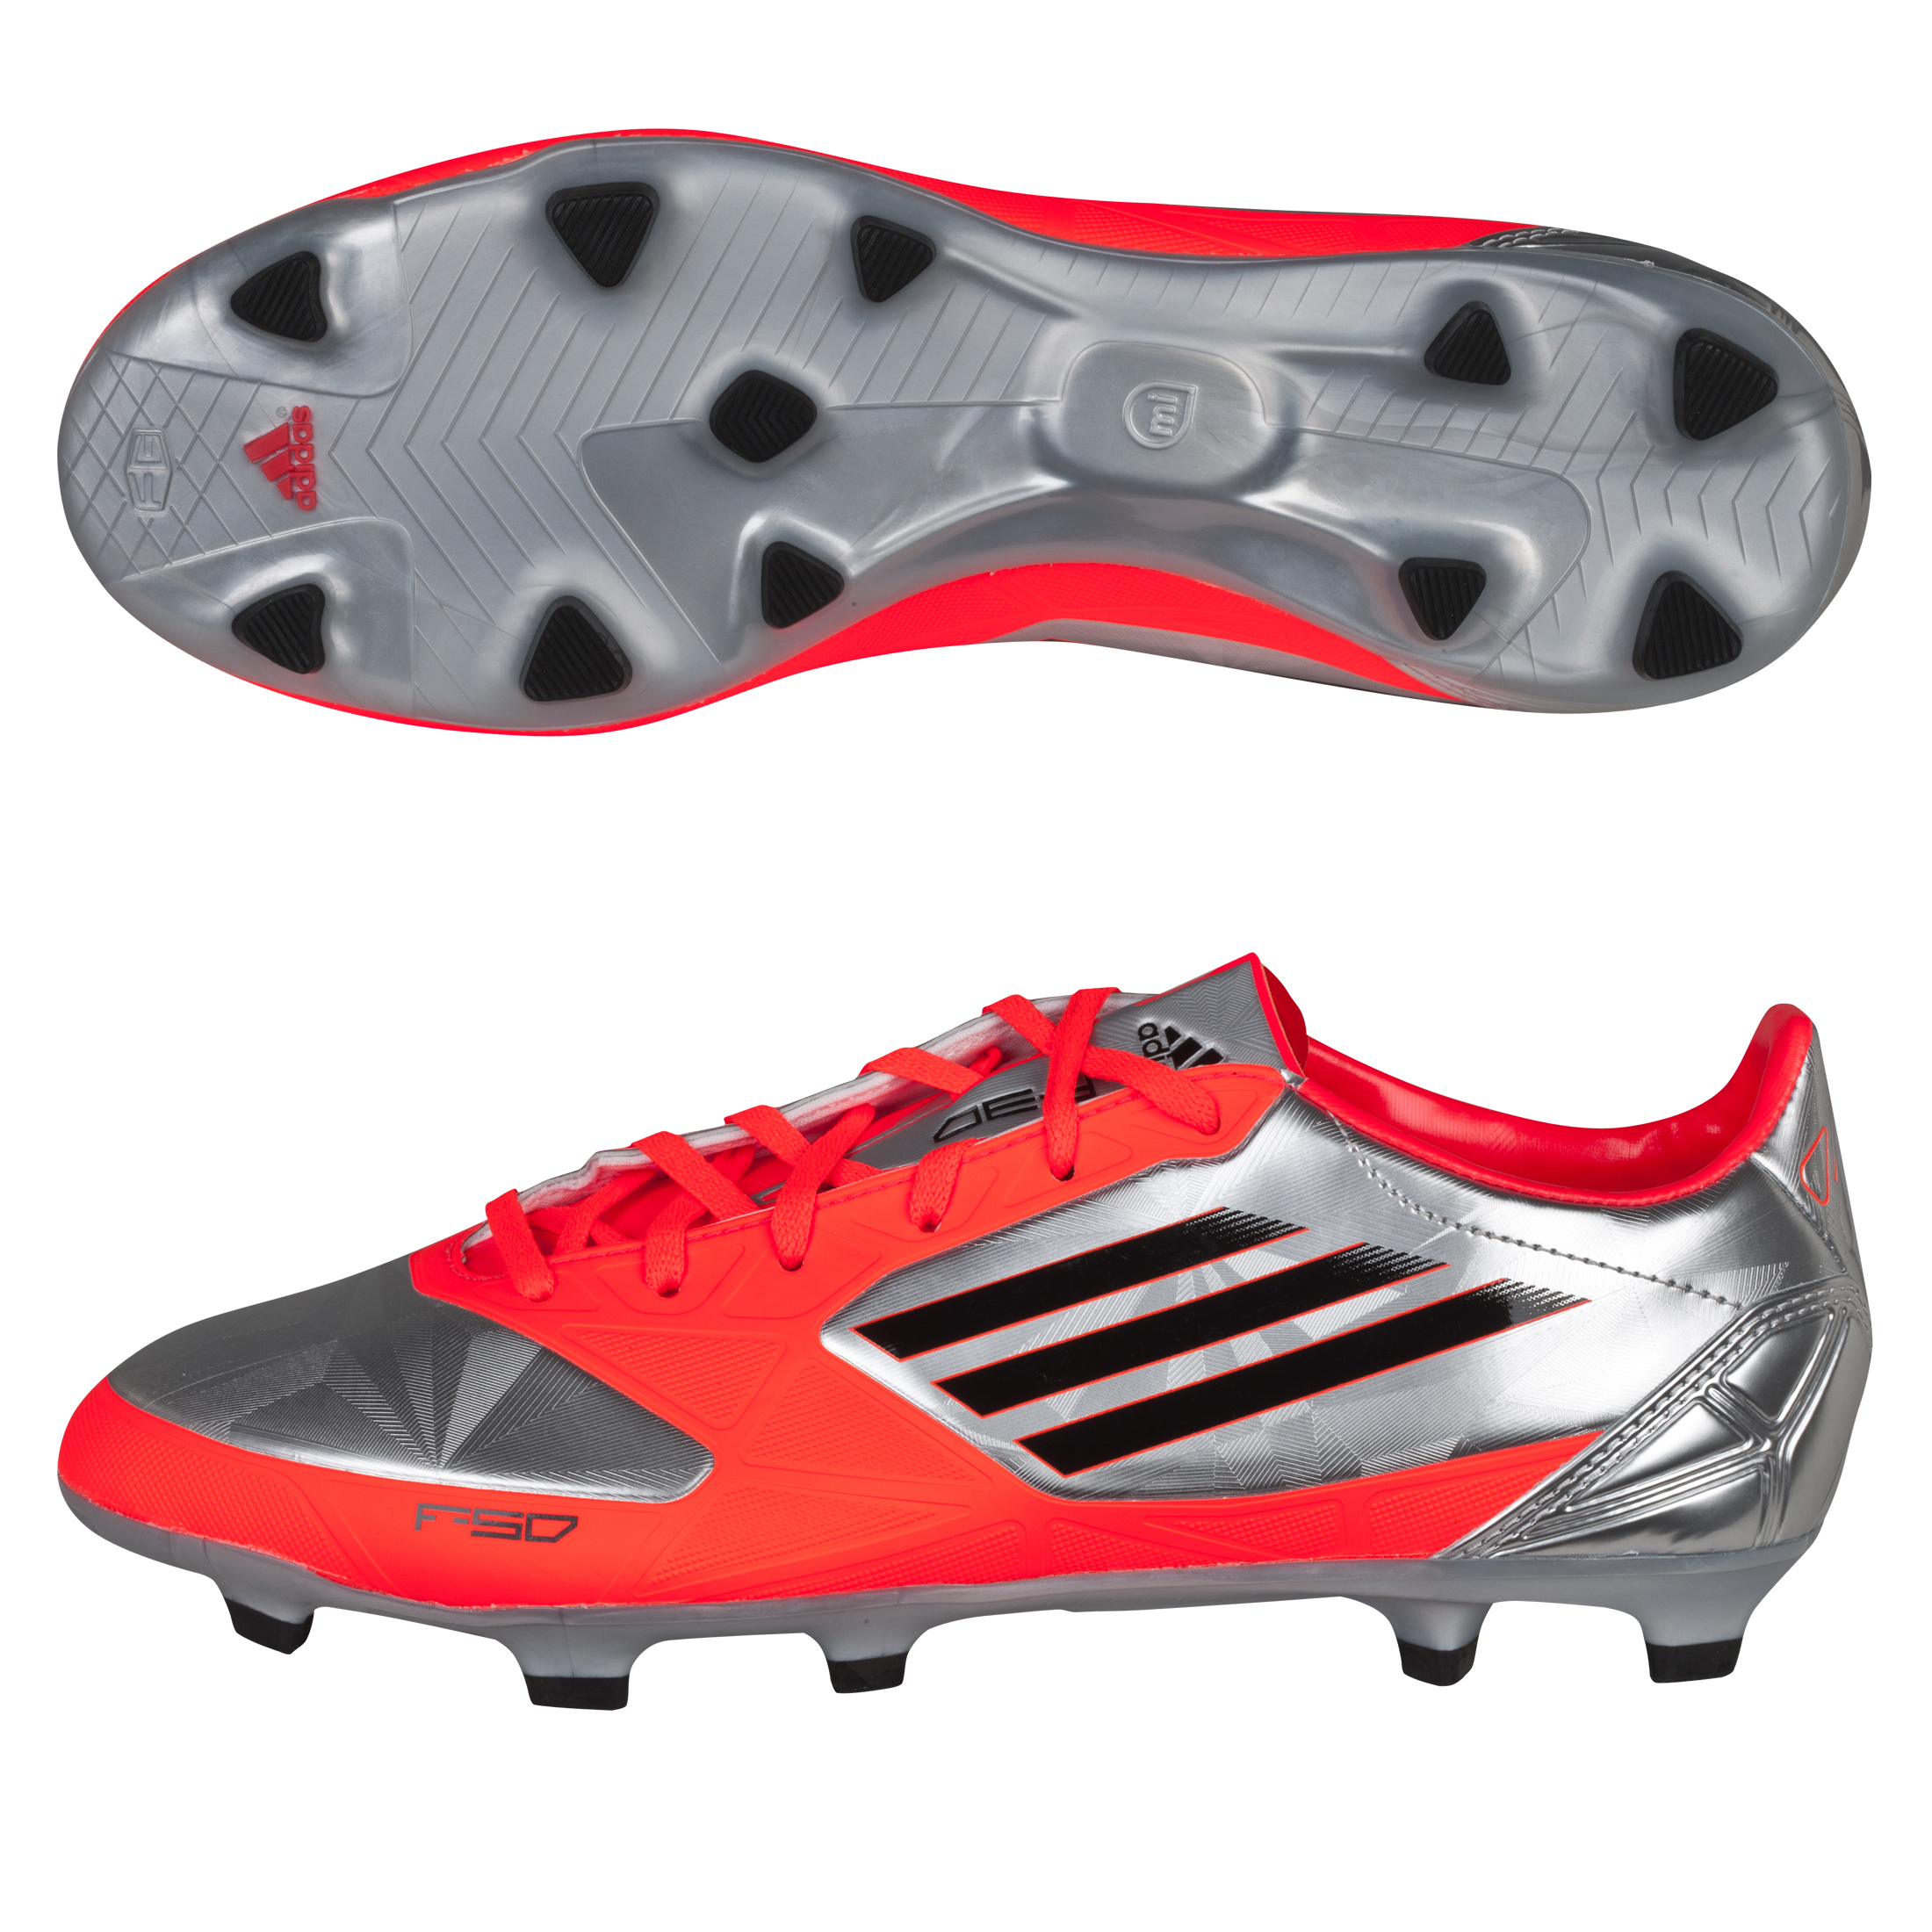 Adidas F30 TRX Firm Ground Football Boots - Metallic Silver/Black/Infrared